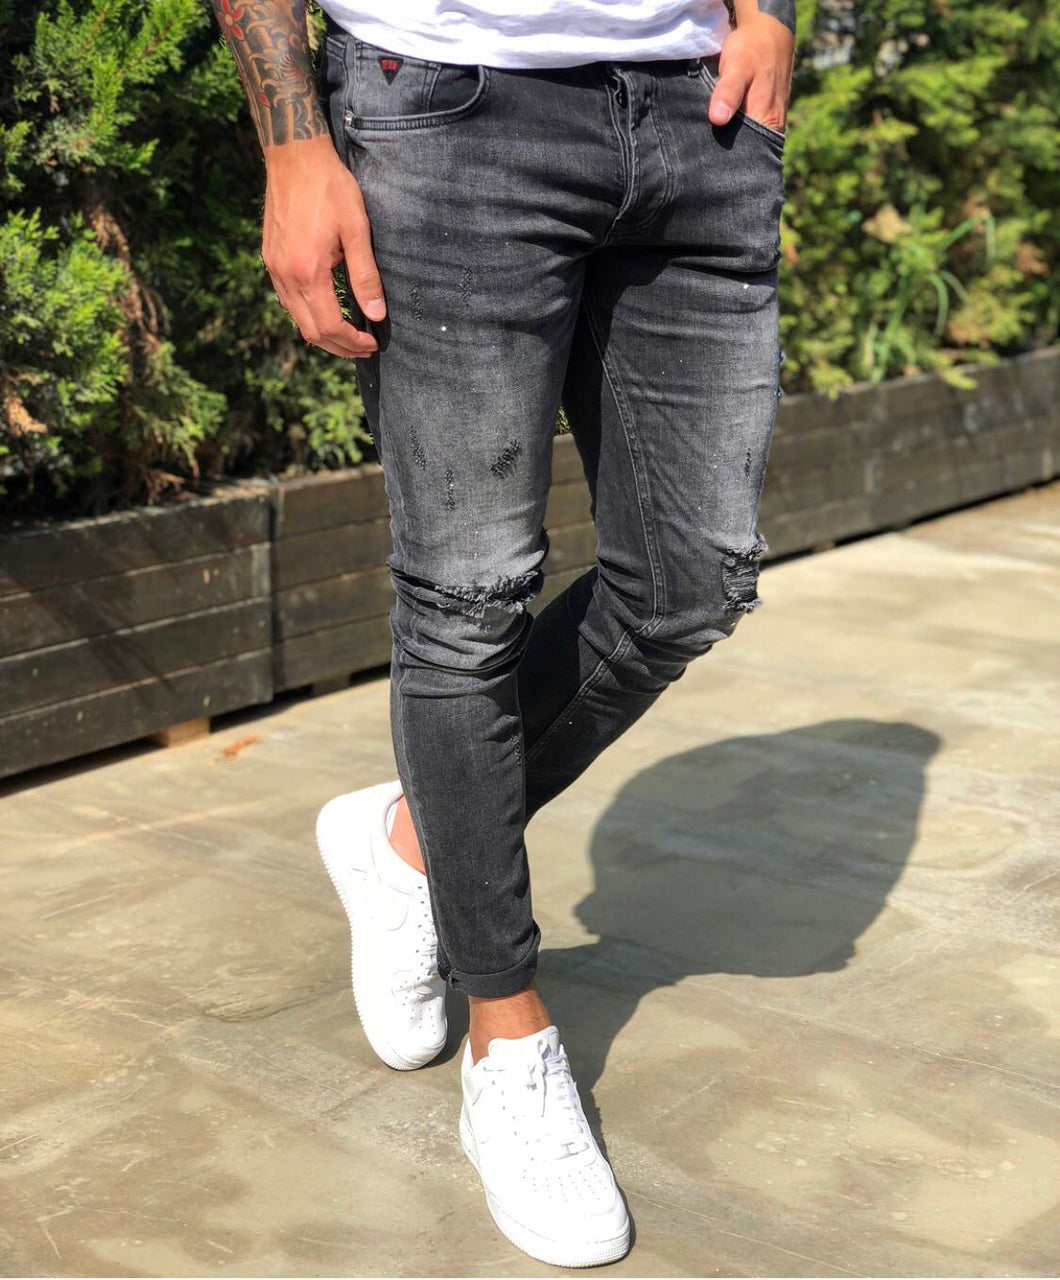 Gray Distressed Skinny Fit Denim B229 Streetwear Jeans